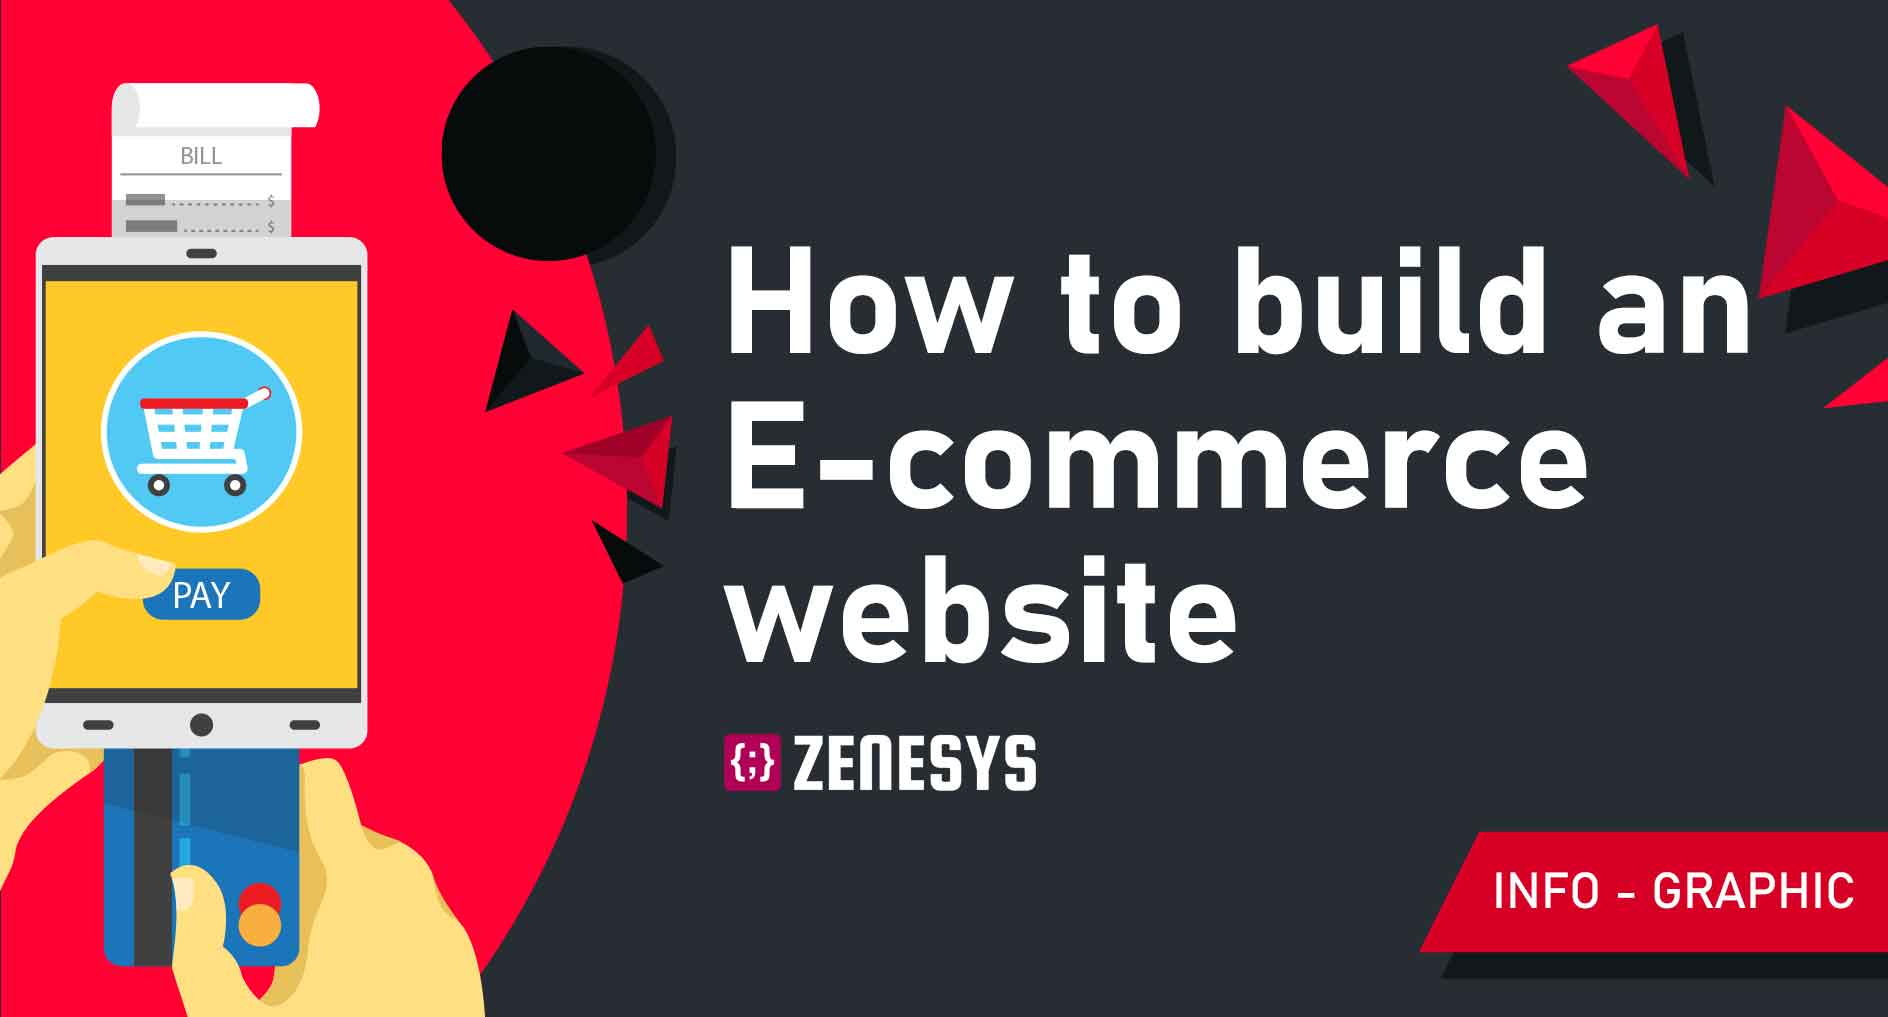 How to build an E-commerce website - Infographic